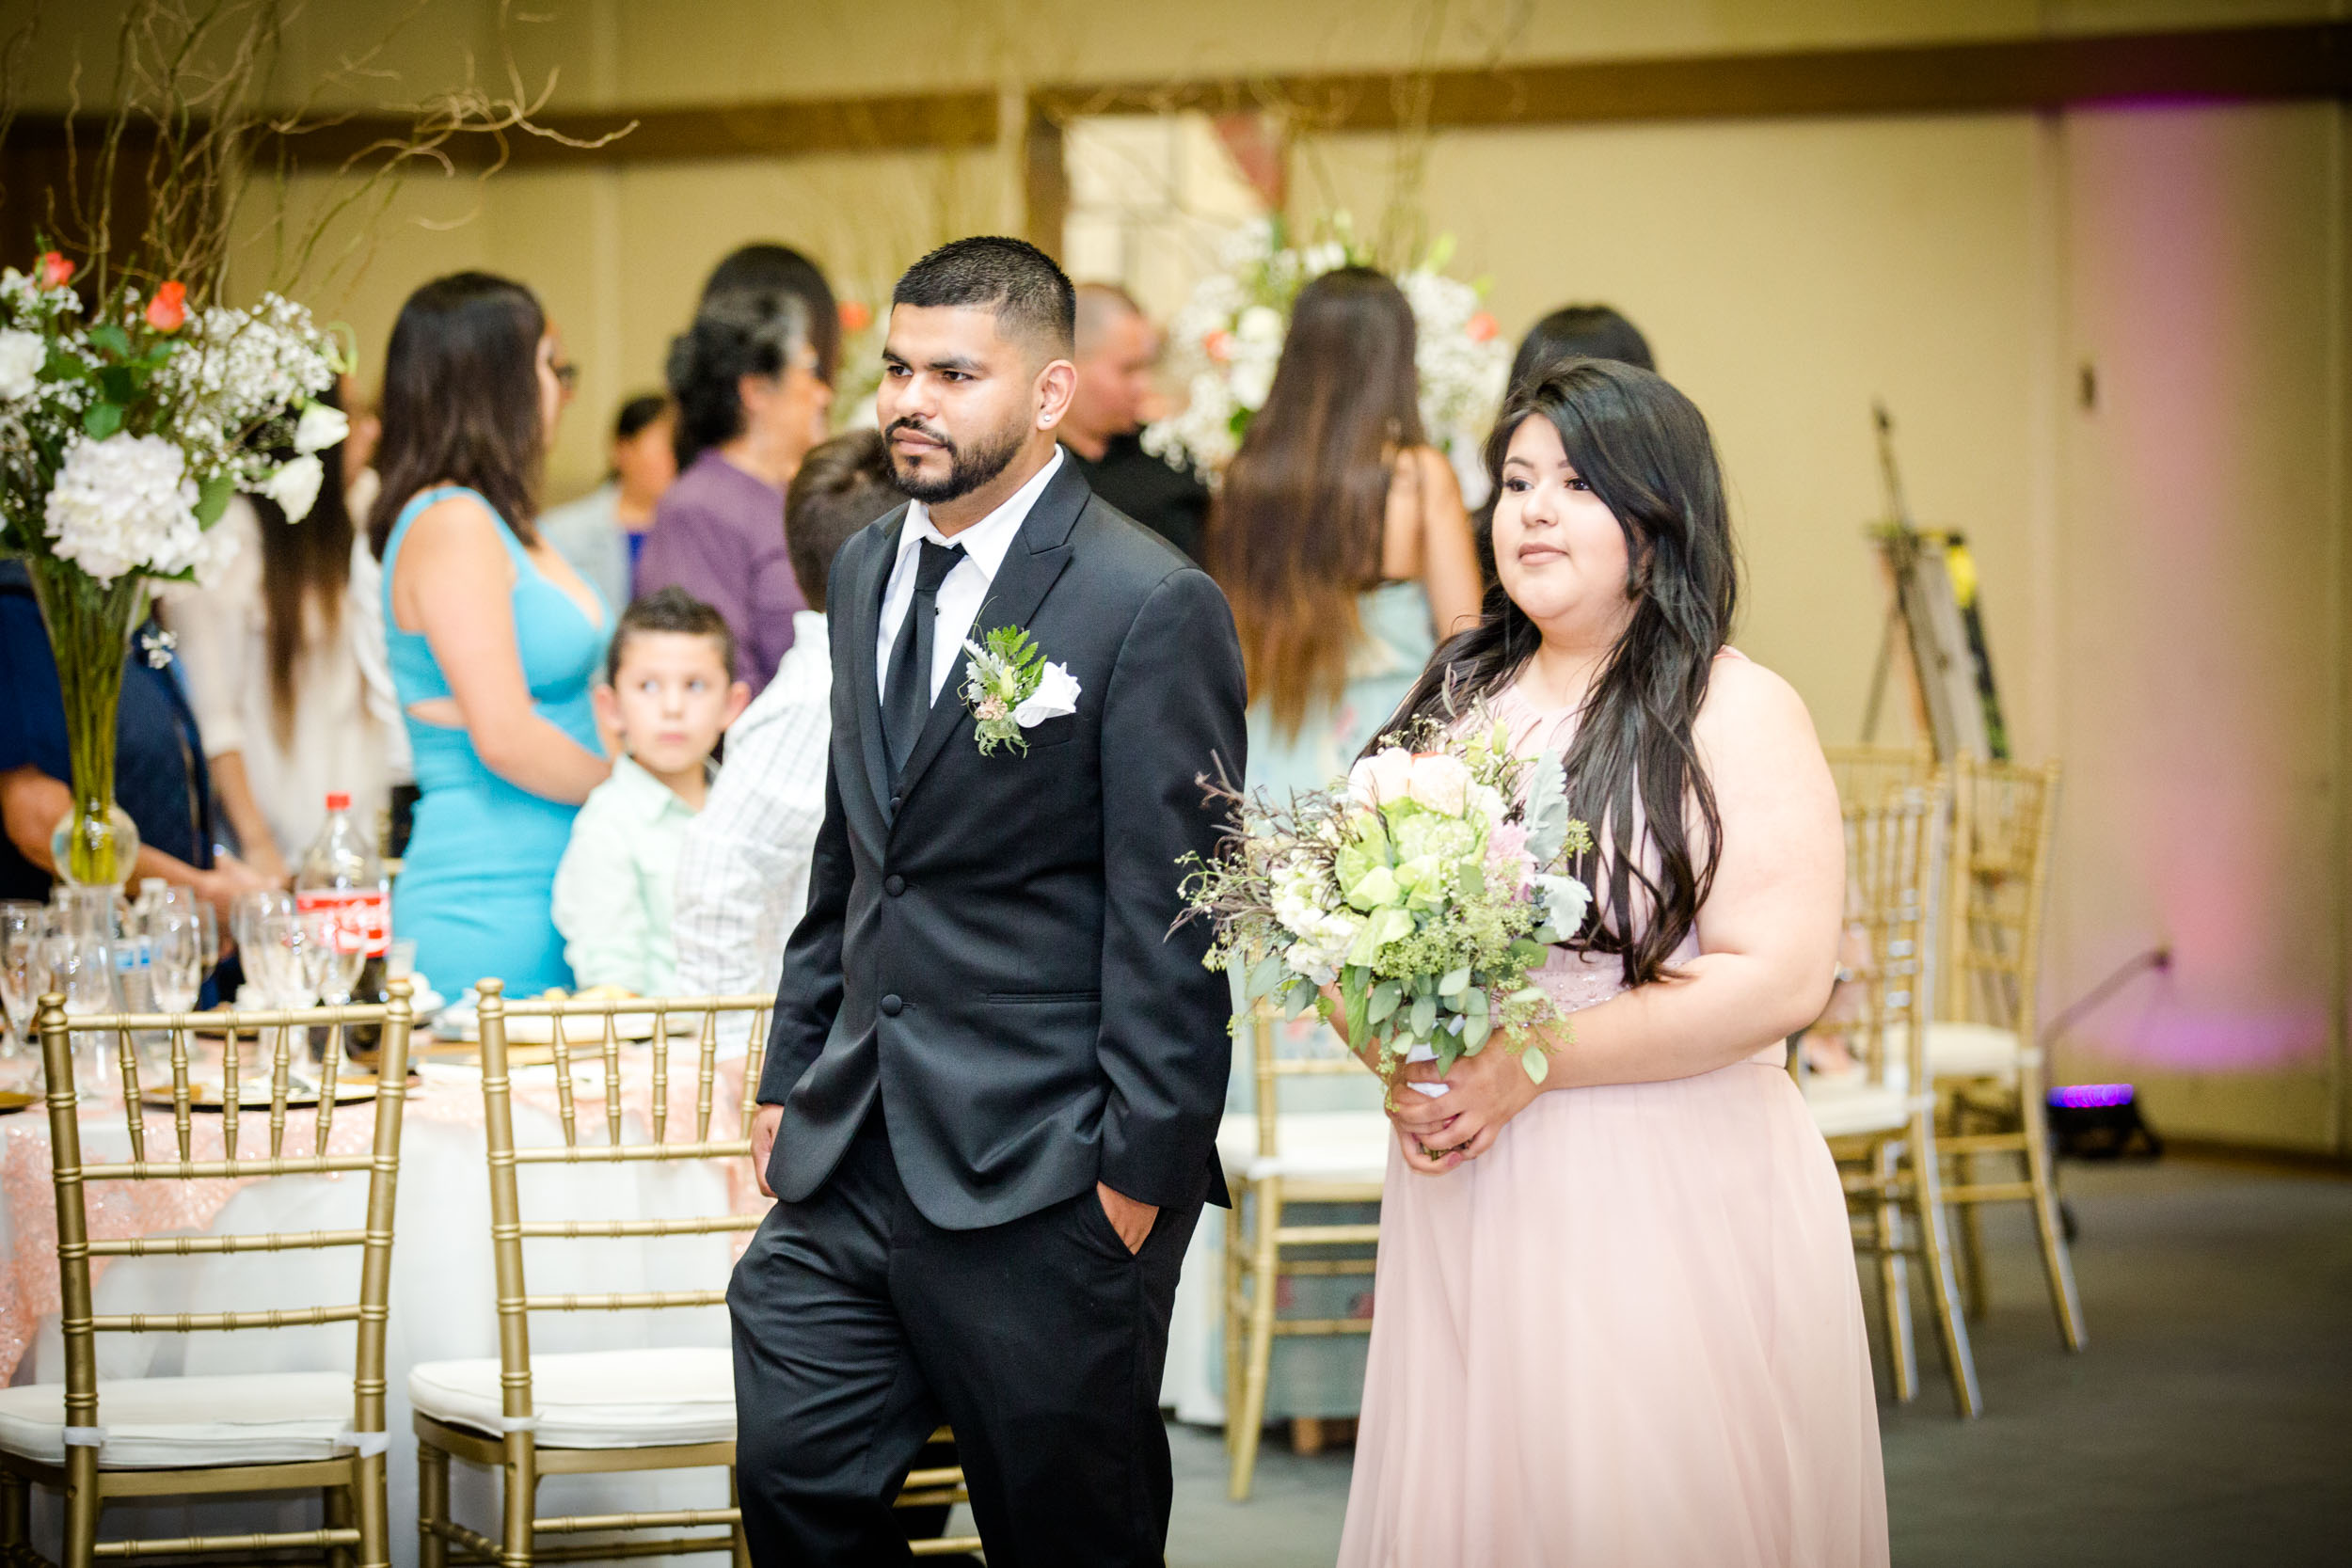 Our Wedding-415